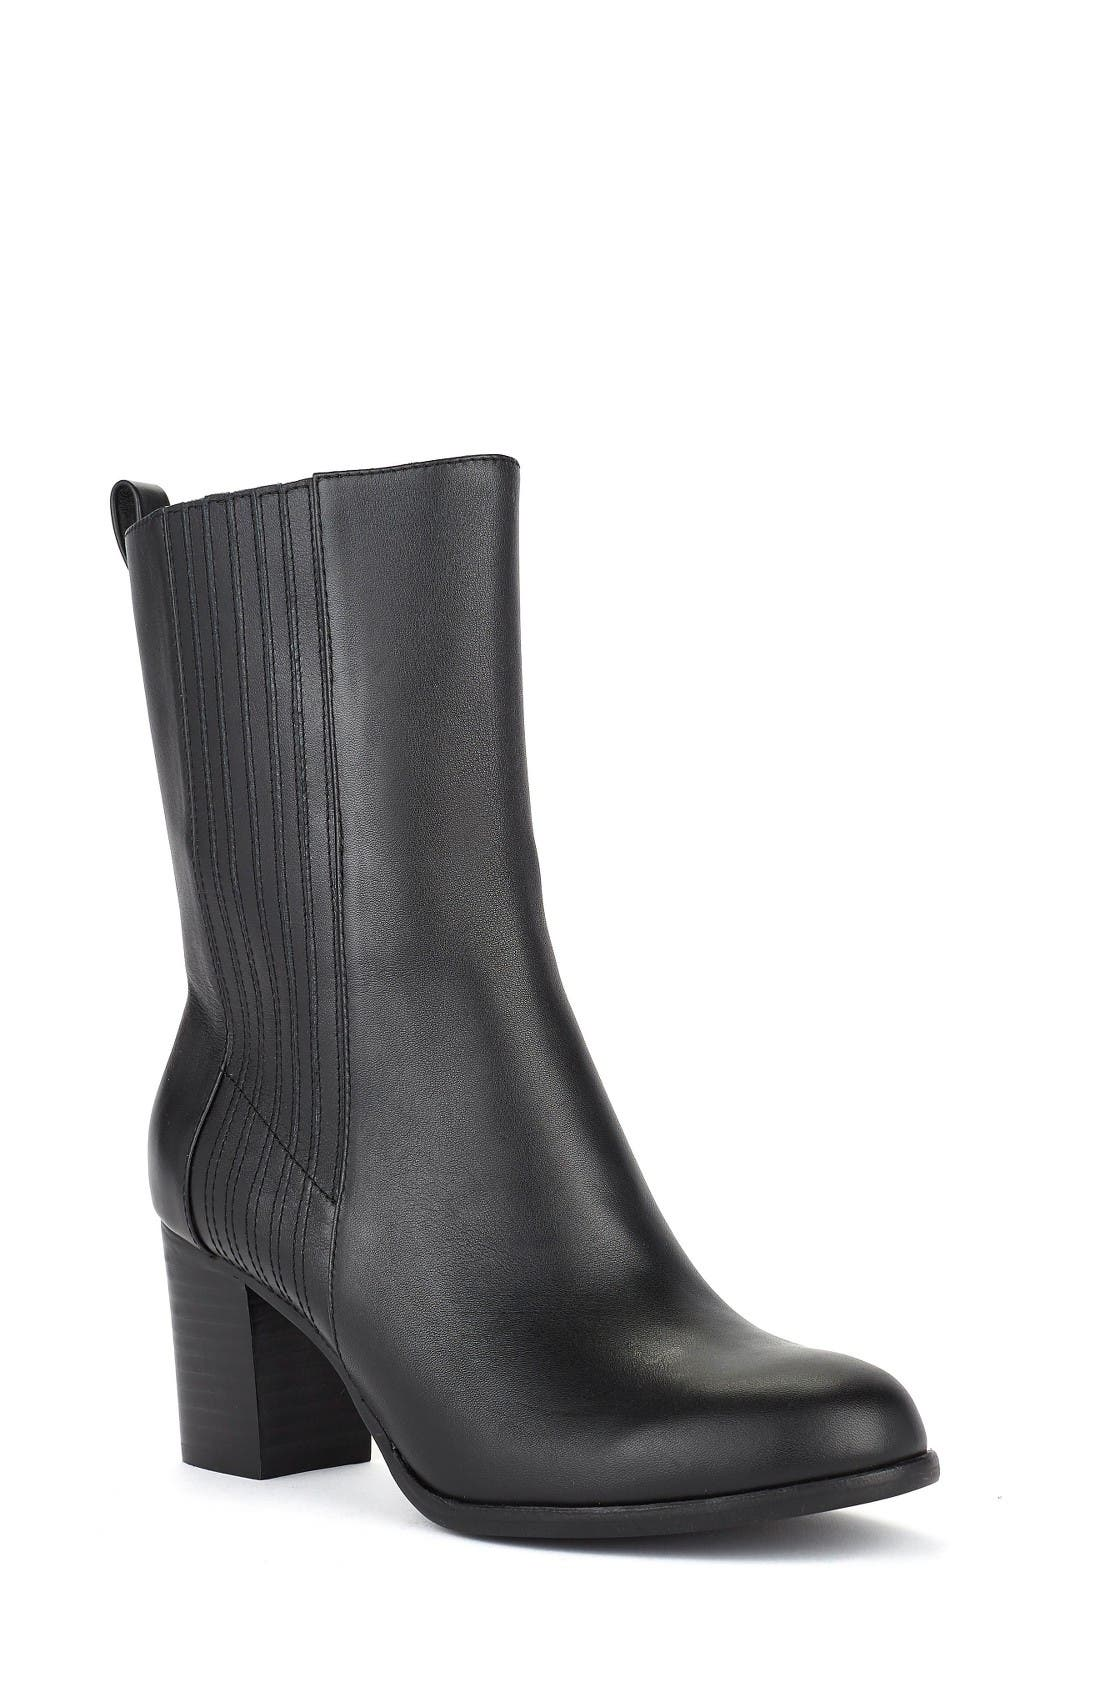 SHOES OF PREY x Eleanor Pendleton Block Heel Bootie